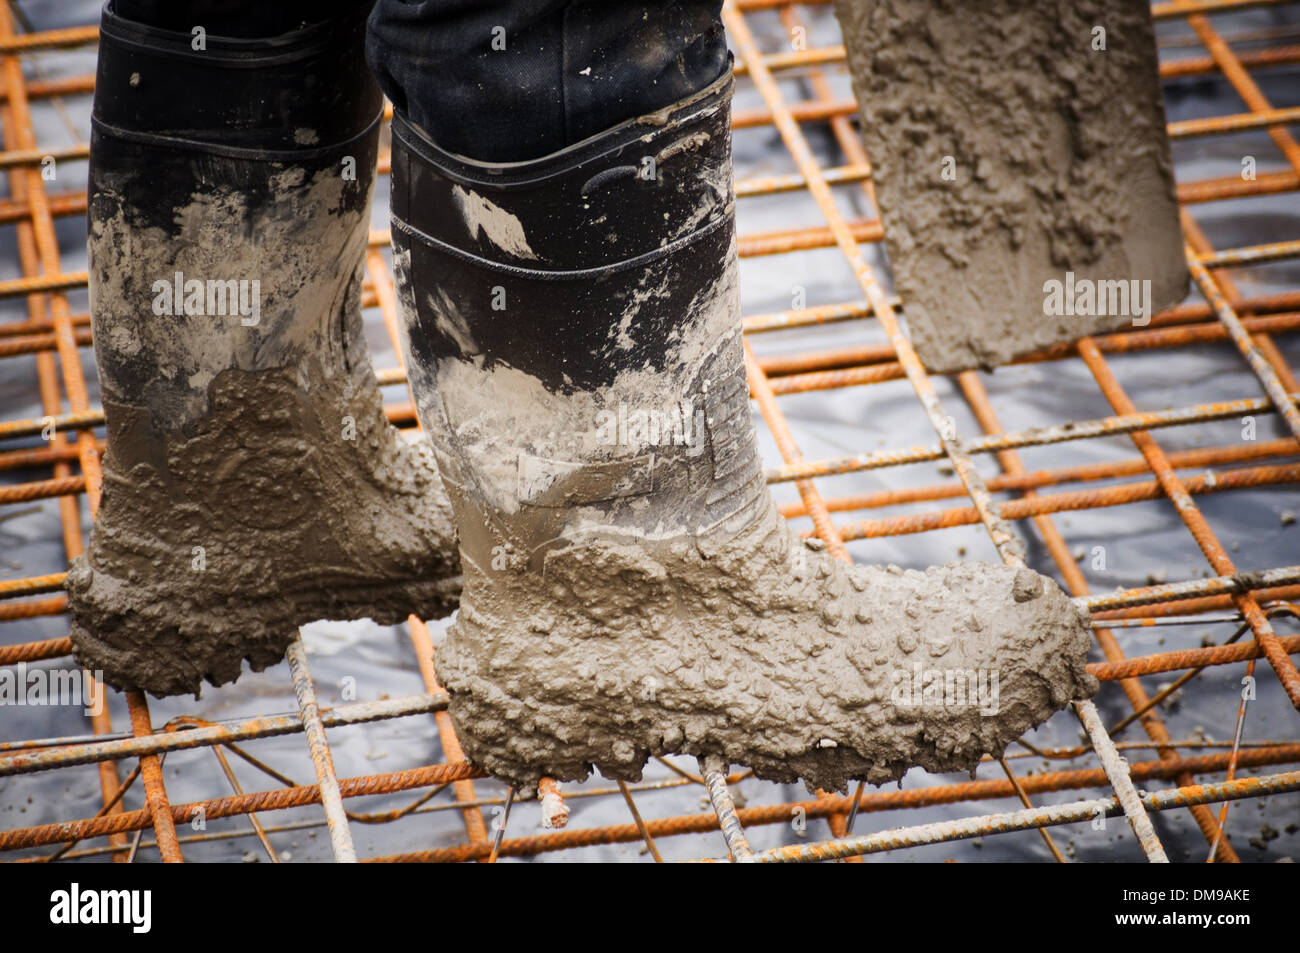 concrete pour pouring pours rebar reinforced reinforcing steel welly boots boot wellies construction industry groundwork foundat - Stock Image